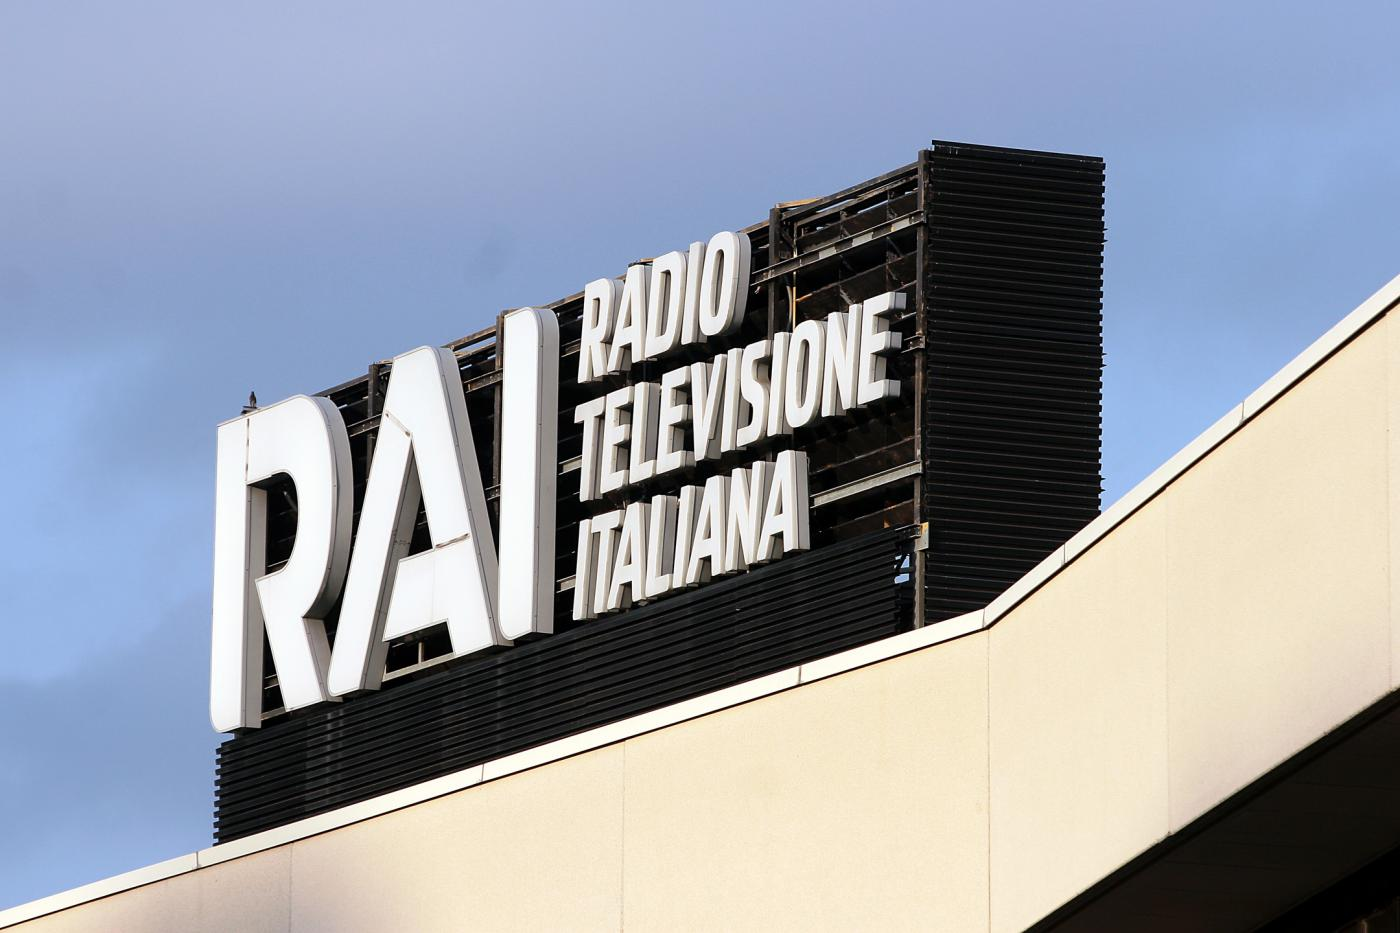 Canone Rai 2015, pagamento in ritardo: come fare?